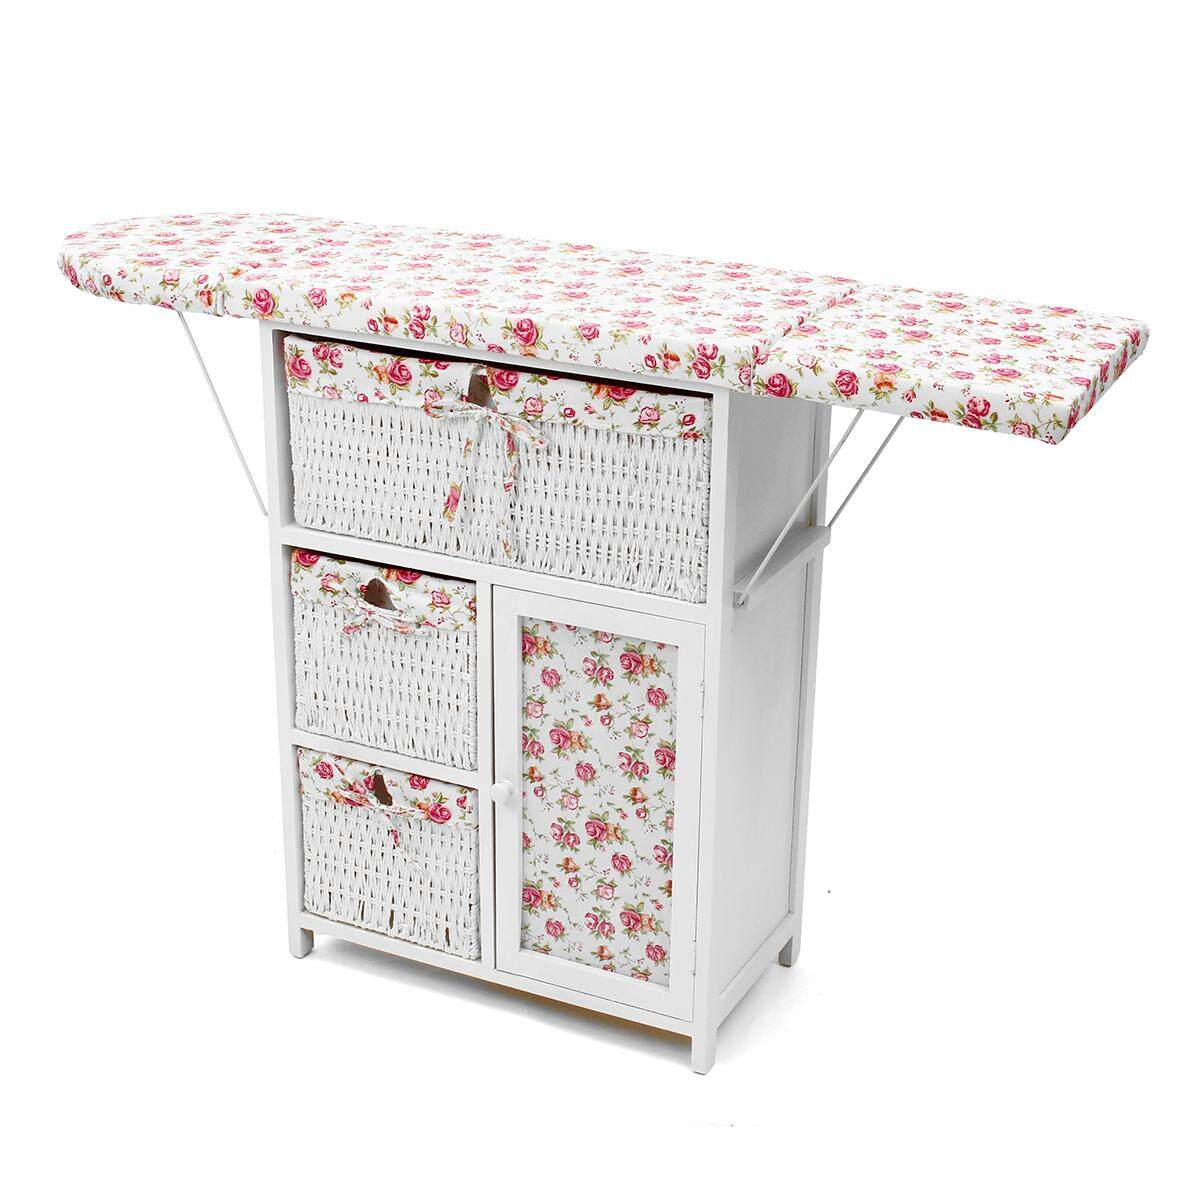 New Ironing Board Storage Unit with 3 Wicker Baskets Foldable Drawers Grey/White - intl